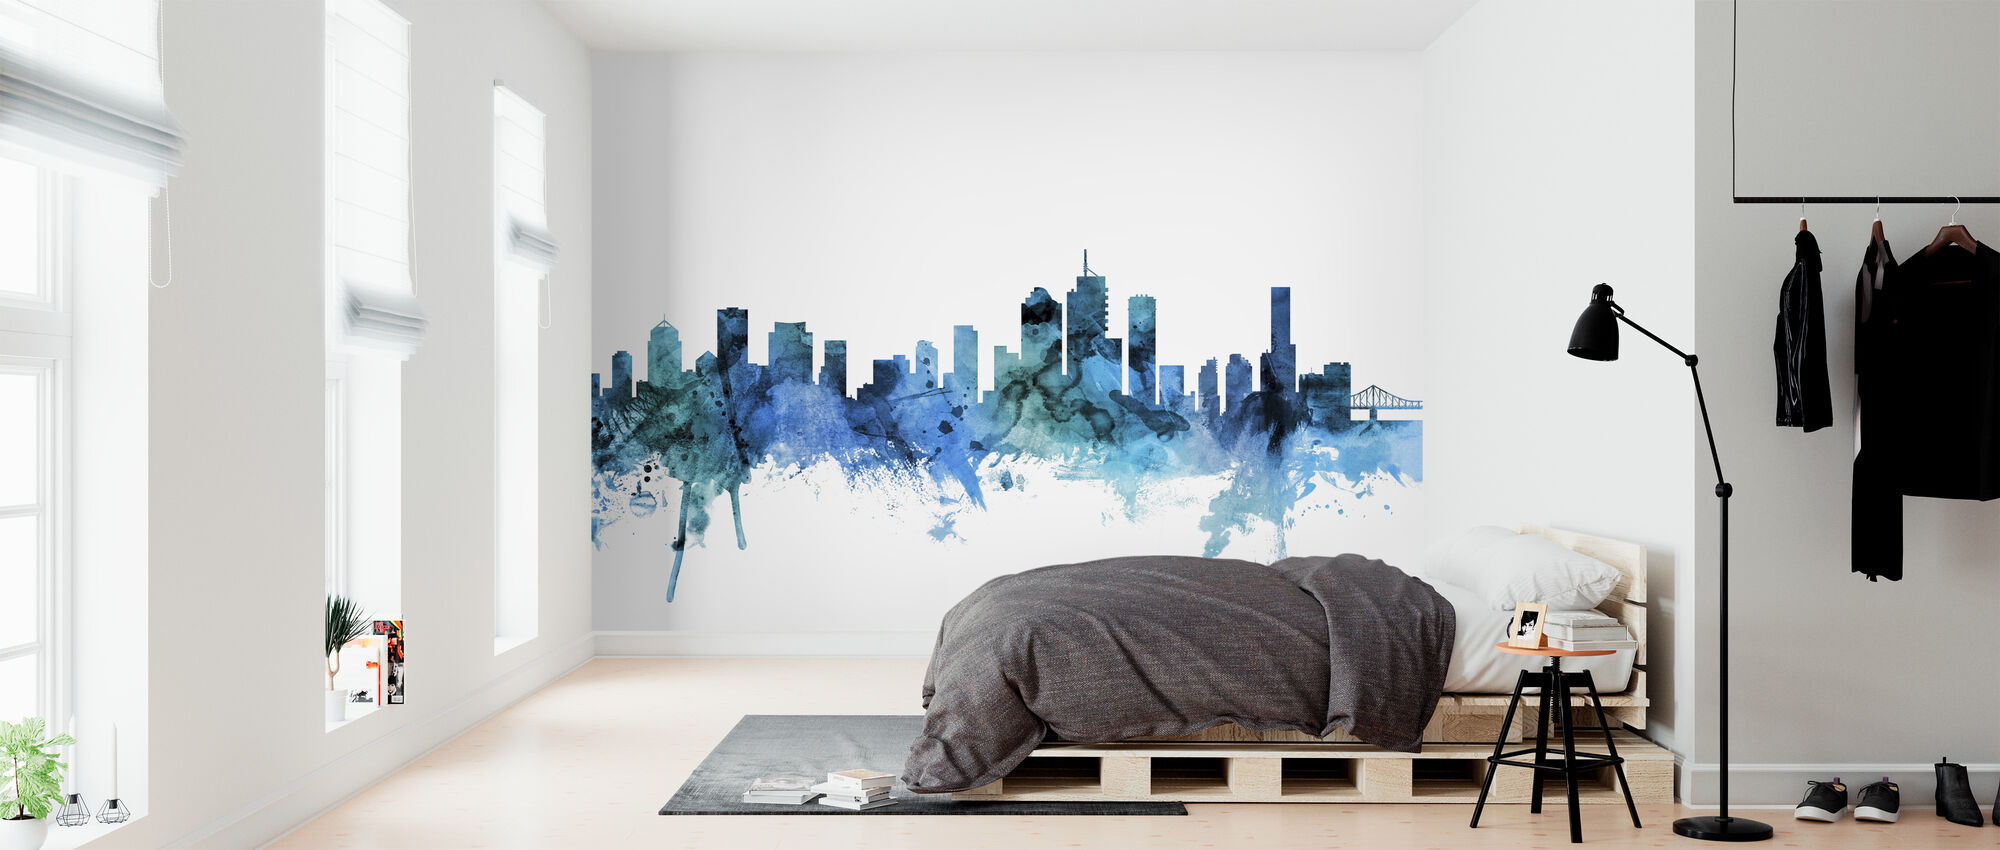 Brisbane Australia Skyline - Wallpaper - Bedroom